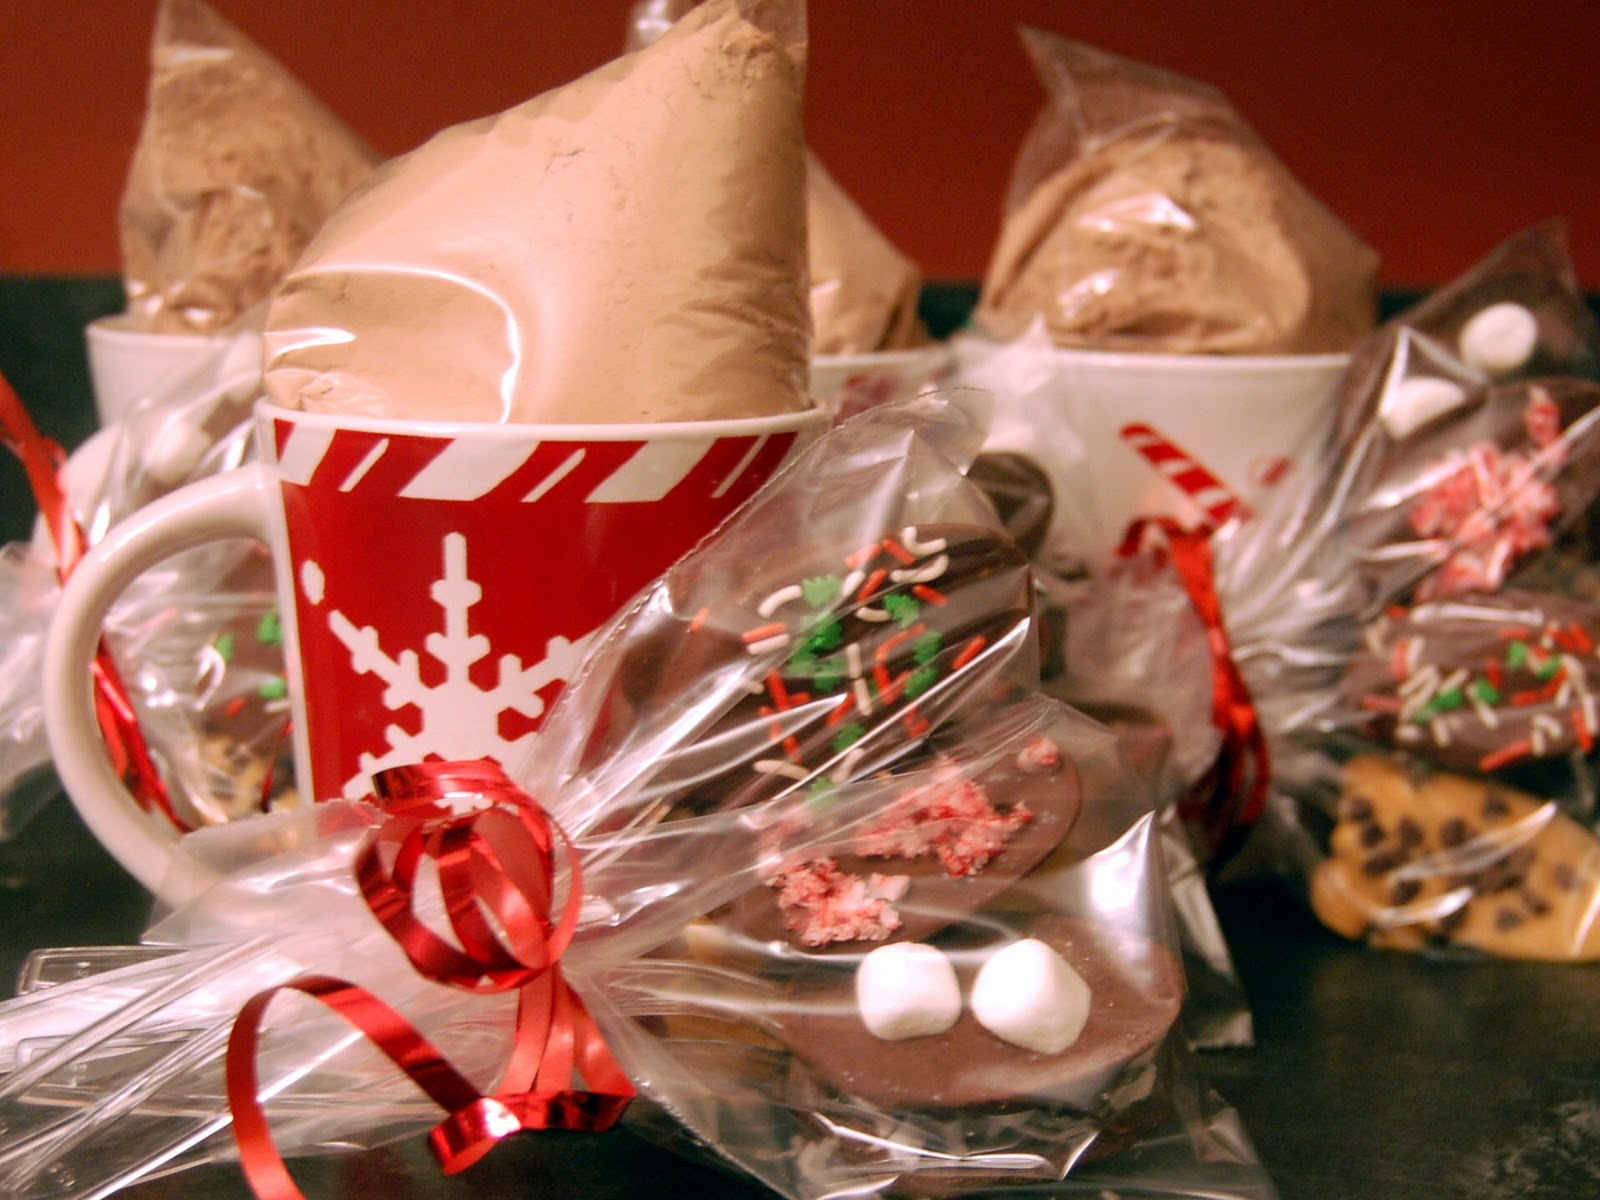 Cassie craves last minute homemade gift ideasvolving hot for the boys teachers i decided to make homemade hot cocoa mix i bagged it up and placed it in festive coffee cups that i found at the dollar store negle Image collections